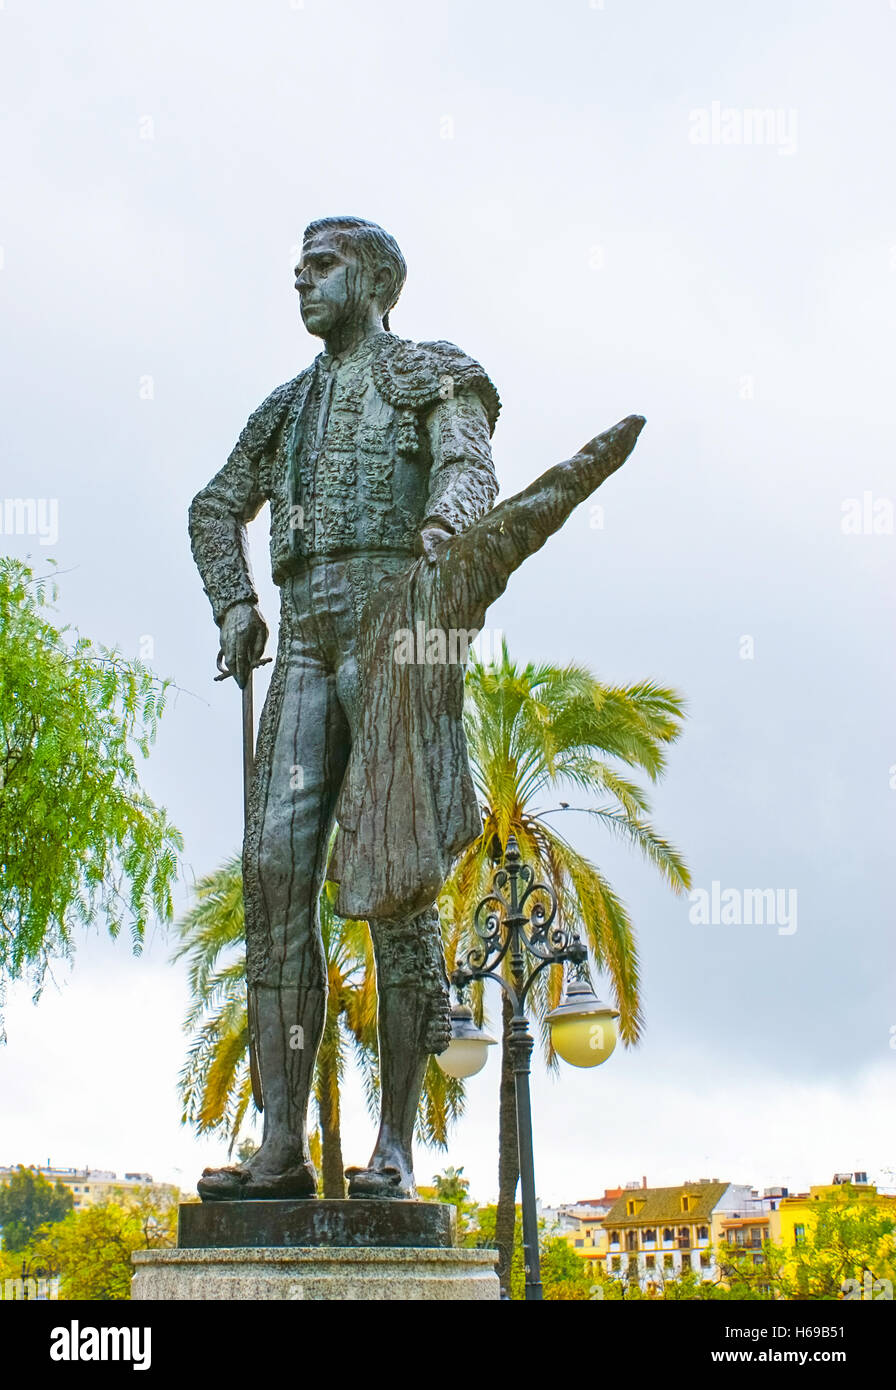 The bronzed statue of Pepe Luis Vazques was placed in front of the Plaza de Toros of the Real Maestranza - Stock Image